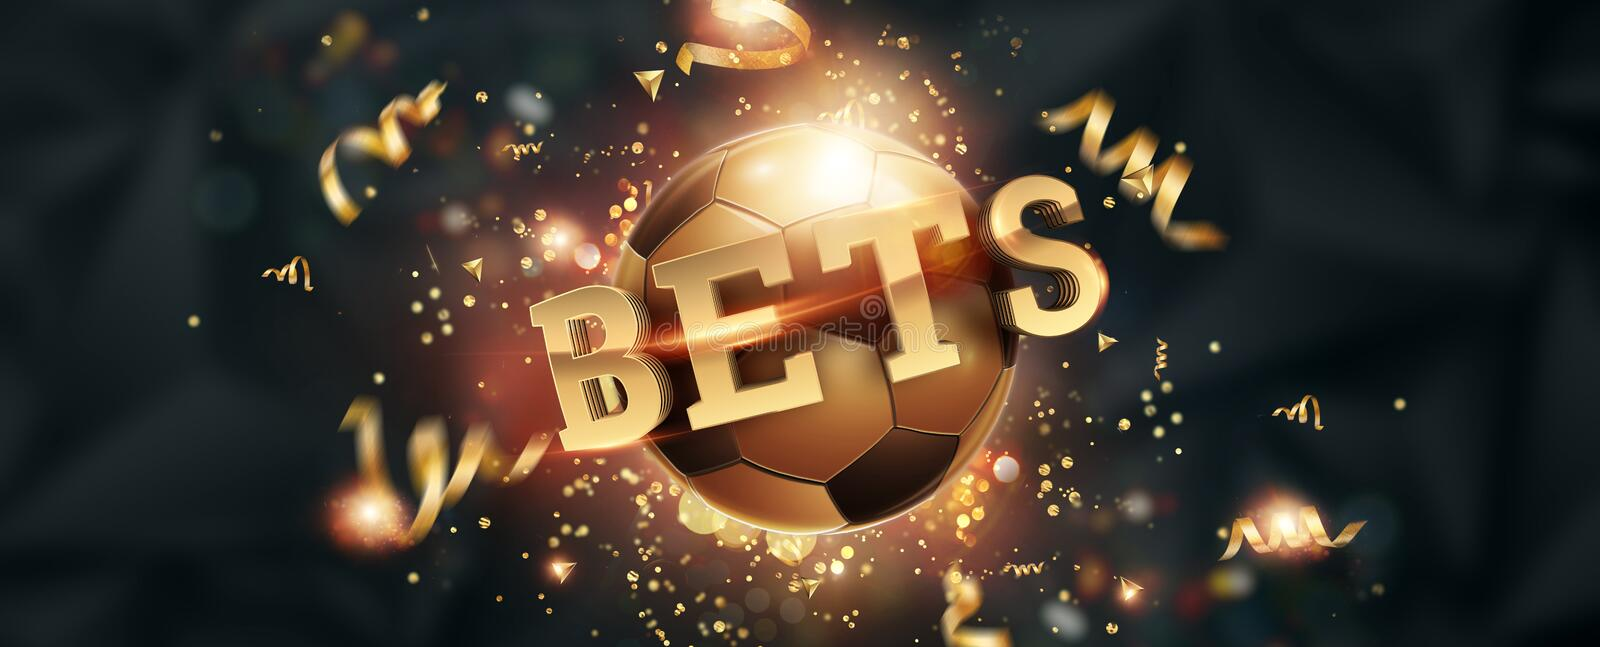 Gold Lettering Bets against soccer ball and dark background. Bets, sports betting, watch sports and bet. Flyer, design, layout. 3D. Design, 3D illustration stock illustration